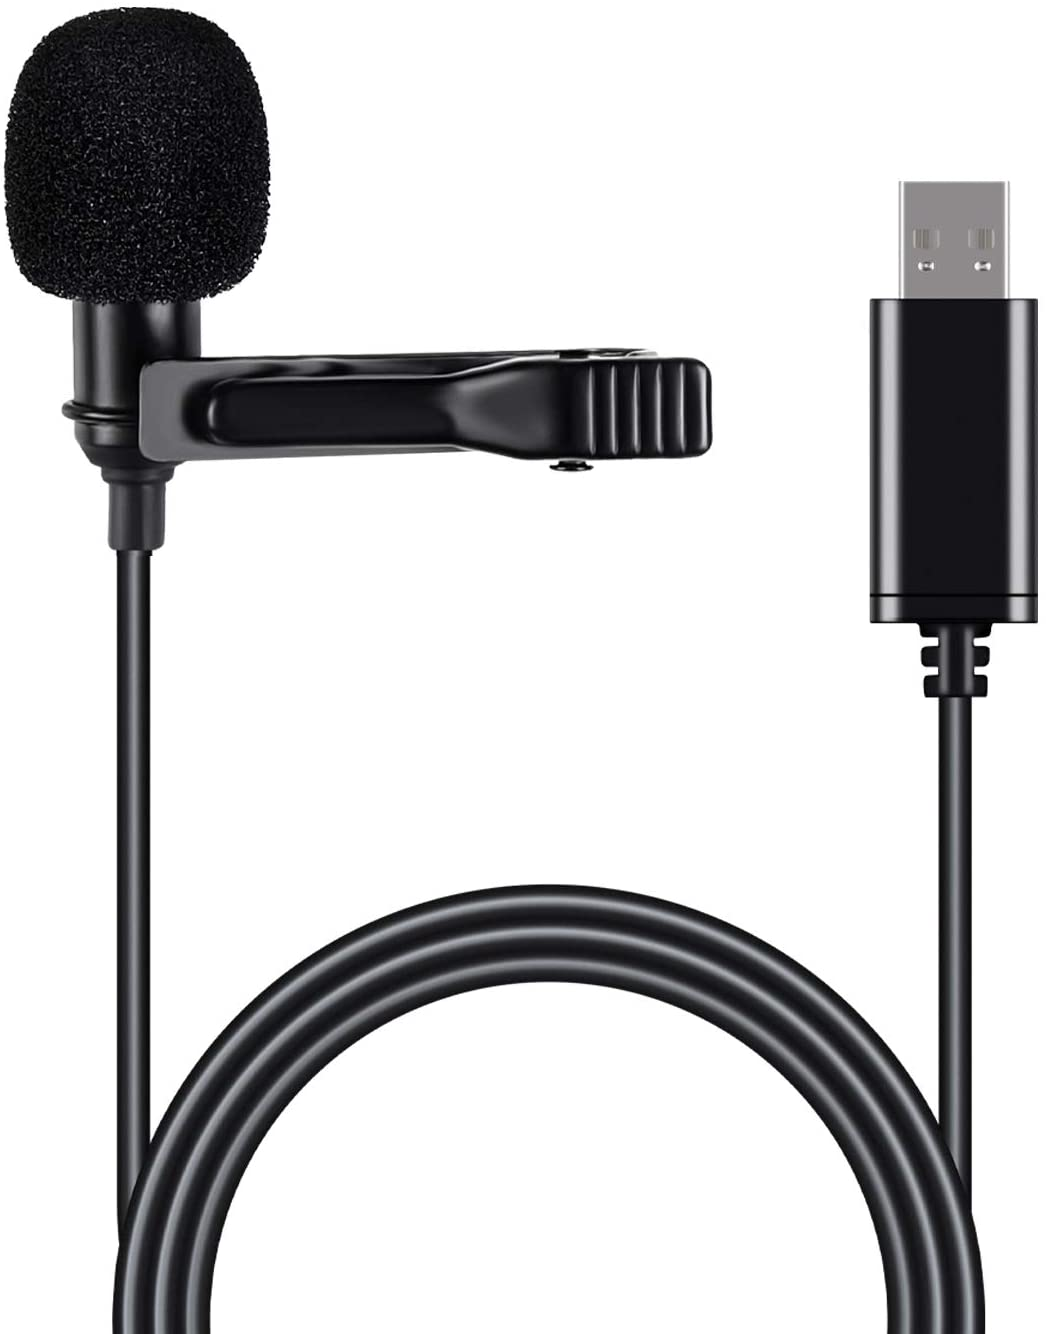 USB Lavalier Microphone for Computer, Clip on Lapel Mic for PC Mac Desktop Laptop Computer Omnidirectional Lav Mic for Recording Audio Interview Video Podcast YouTube Zoom